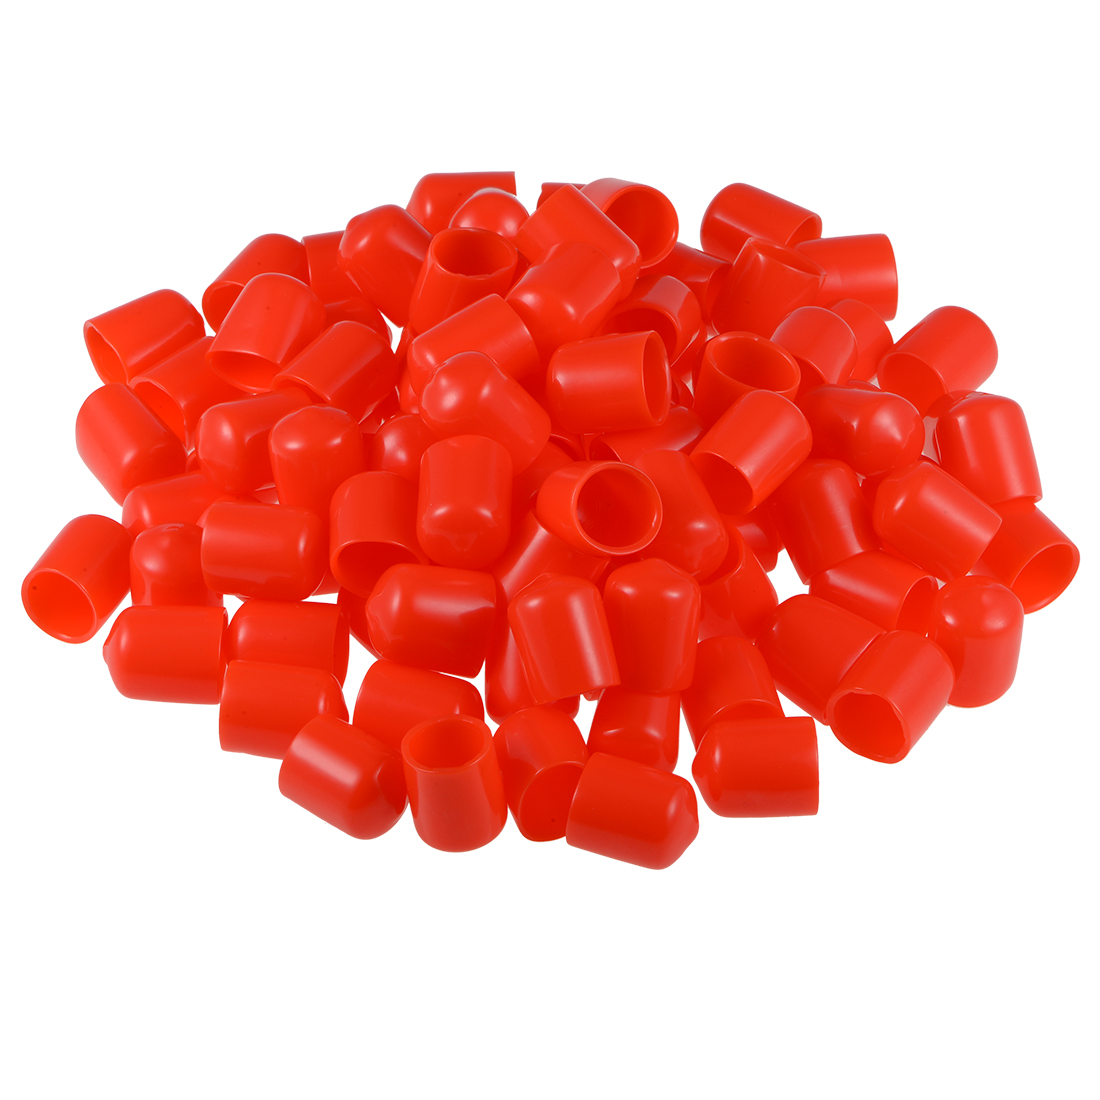 Screw Thread Protectors, 14mm ID 22mm Length Round End Cap Cover Red 100pcs